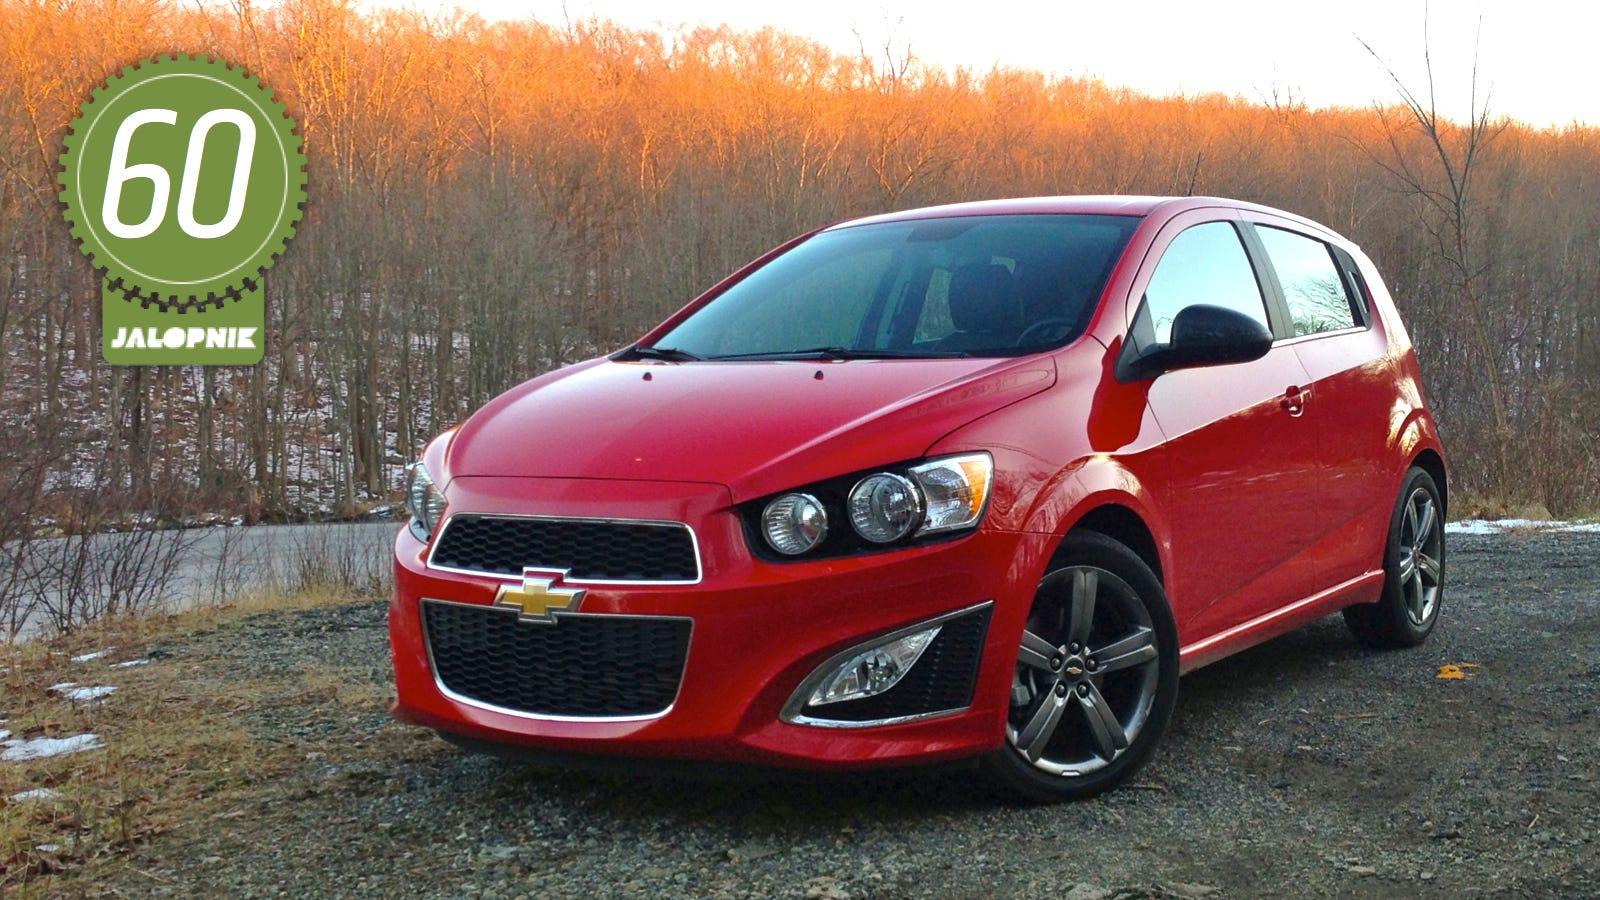 2013 chevy sonic rs the jalopnik review. Black Bedroom Furniture Sets. Home Design Ideas